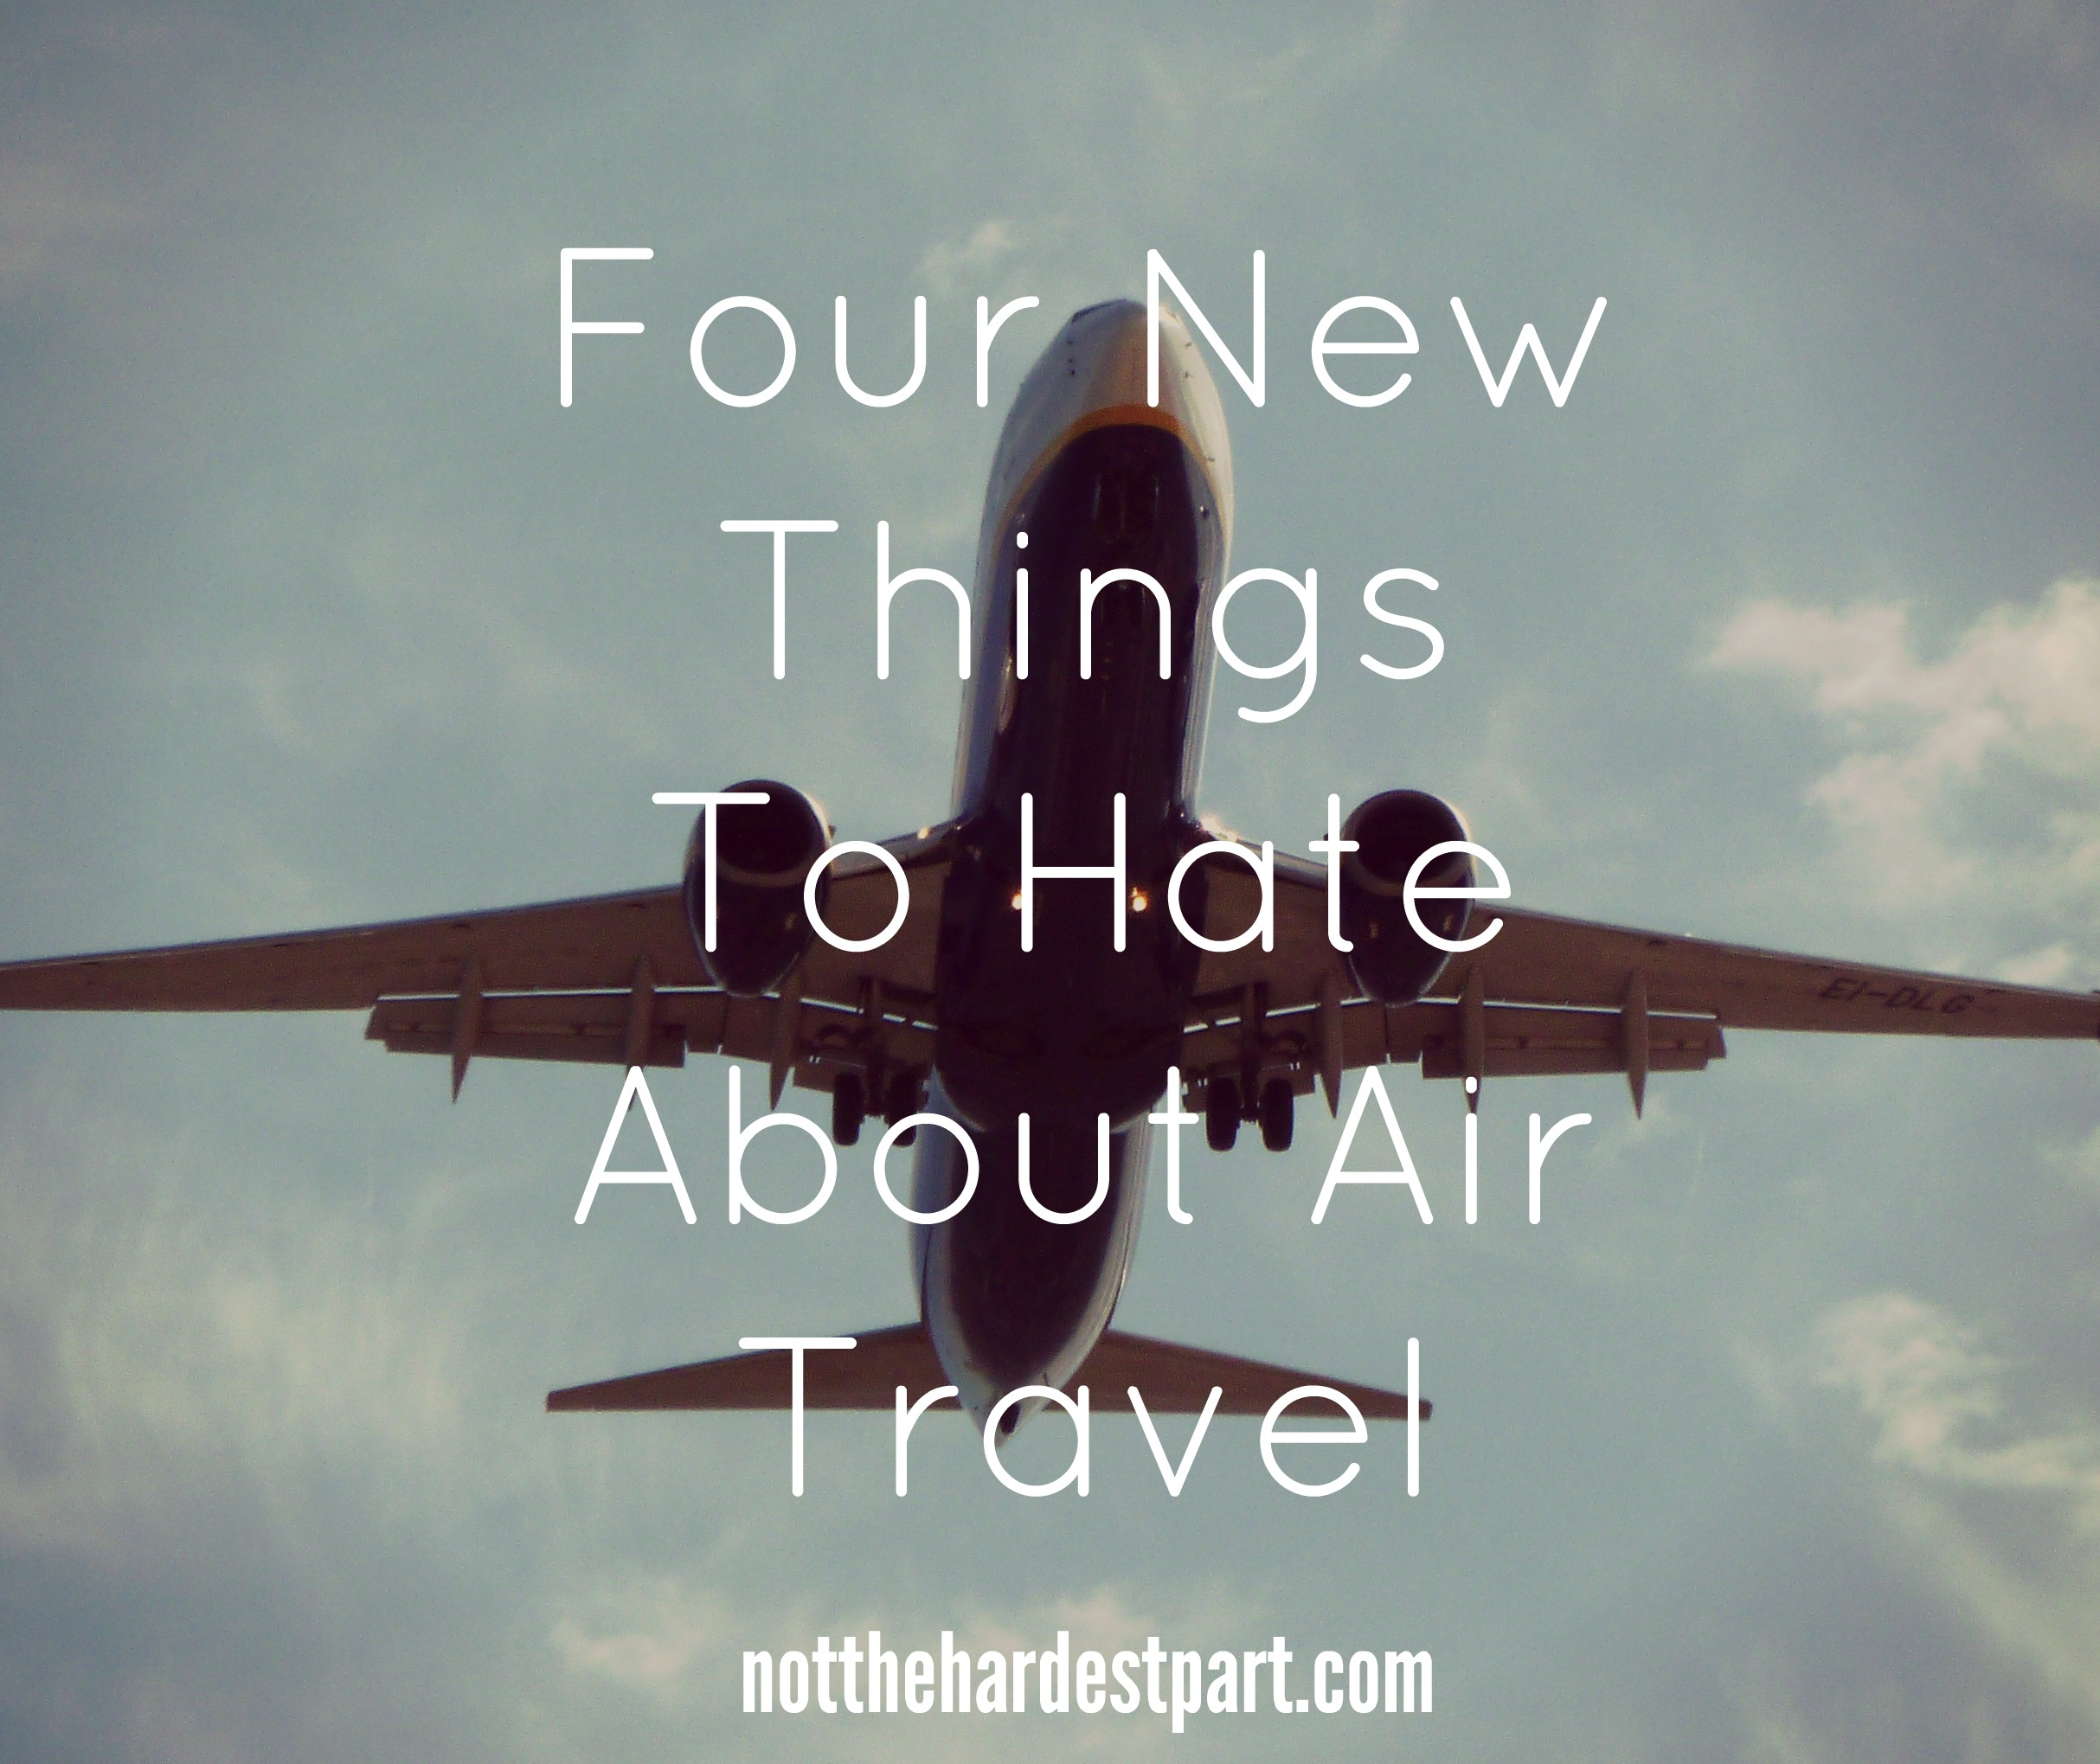 Four New Things To Hate About Air Travel